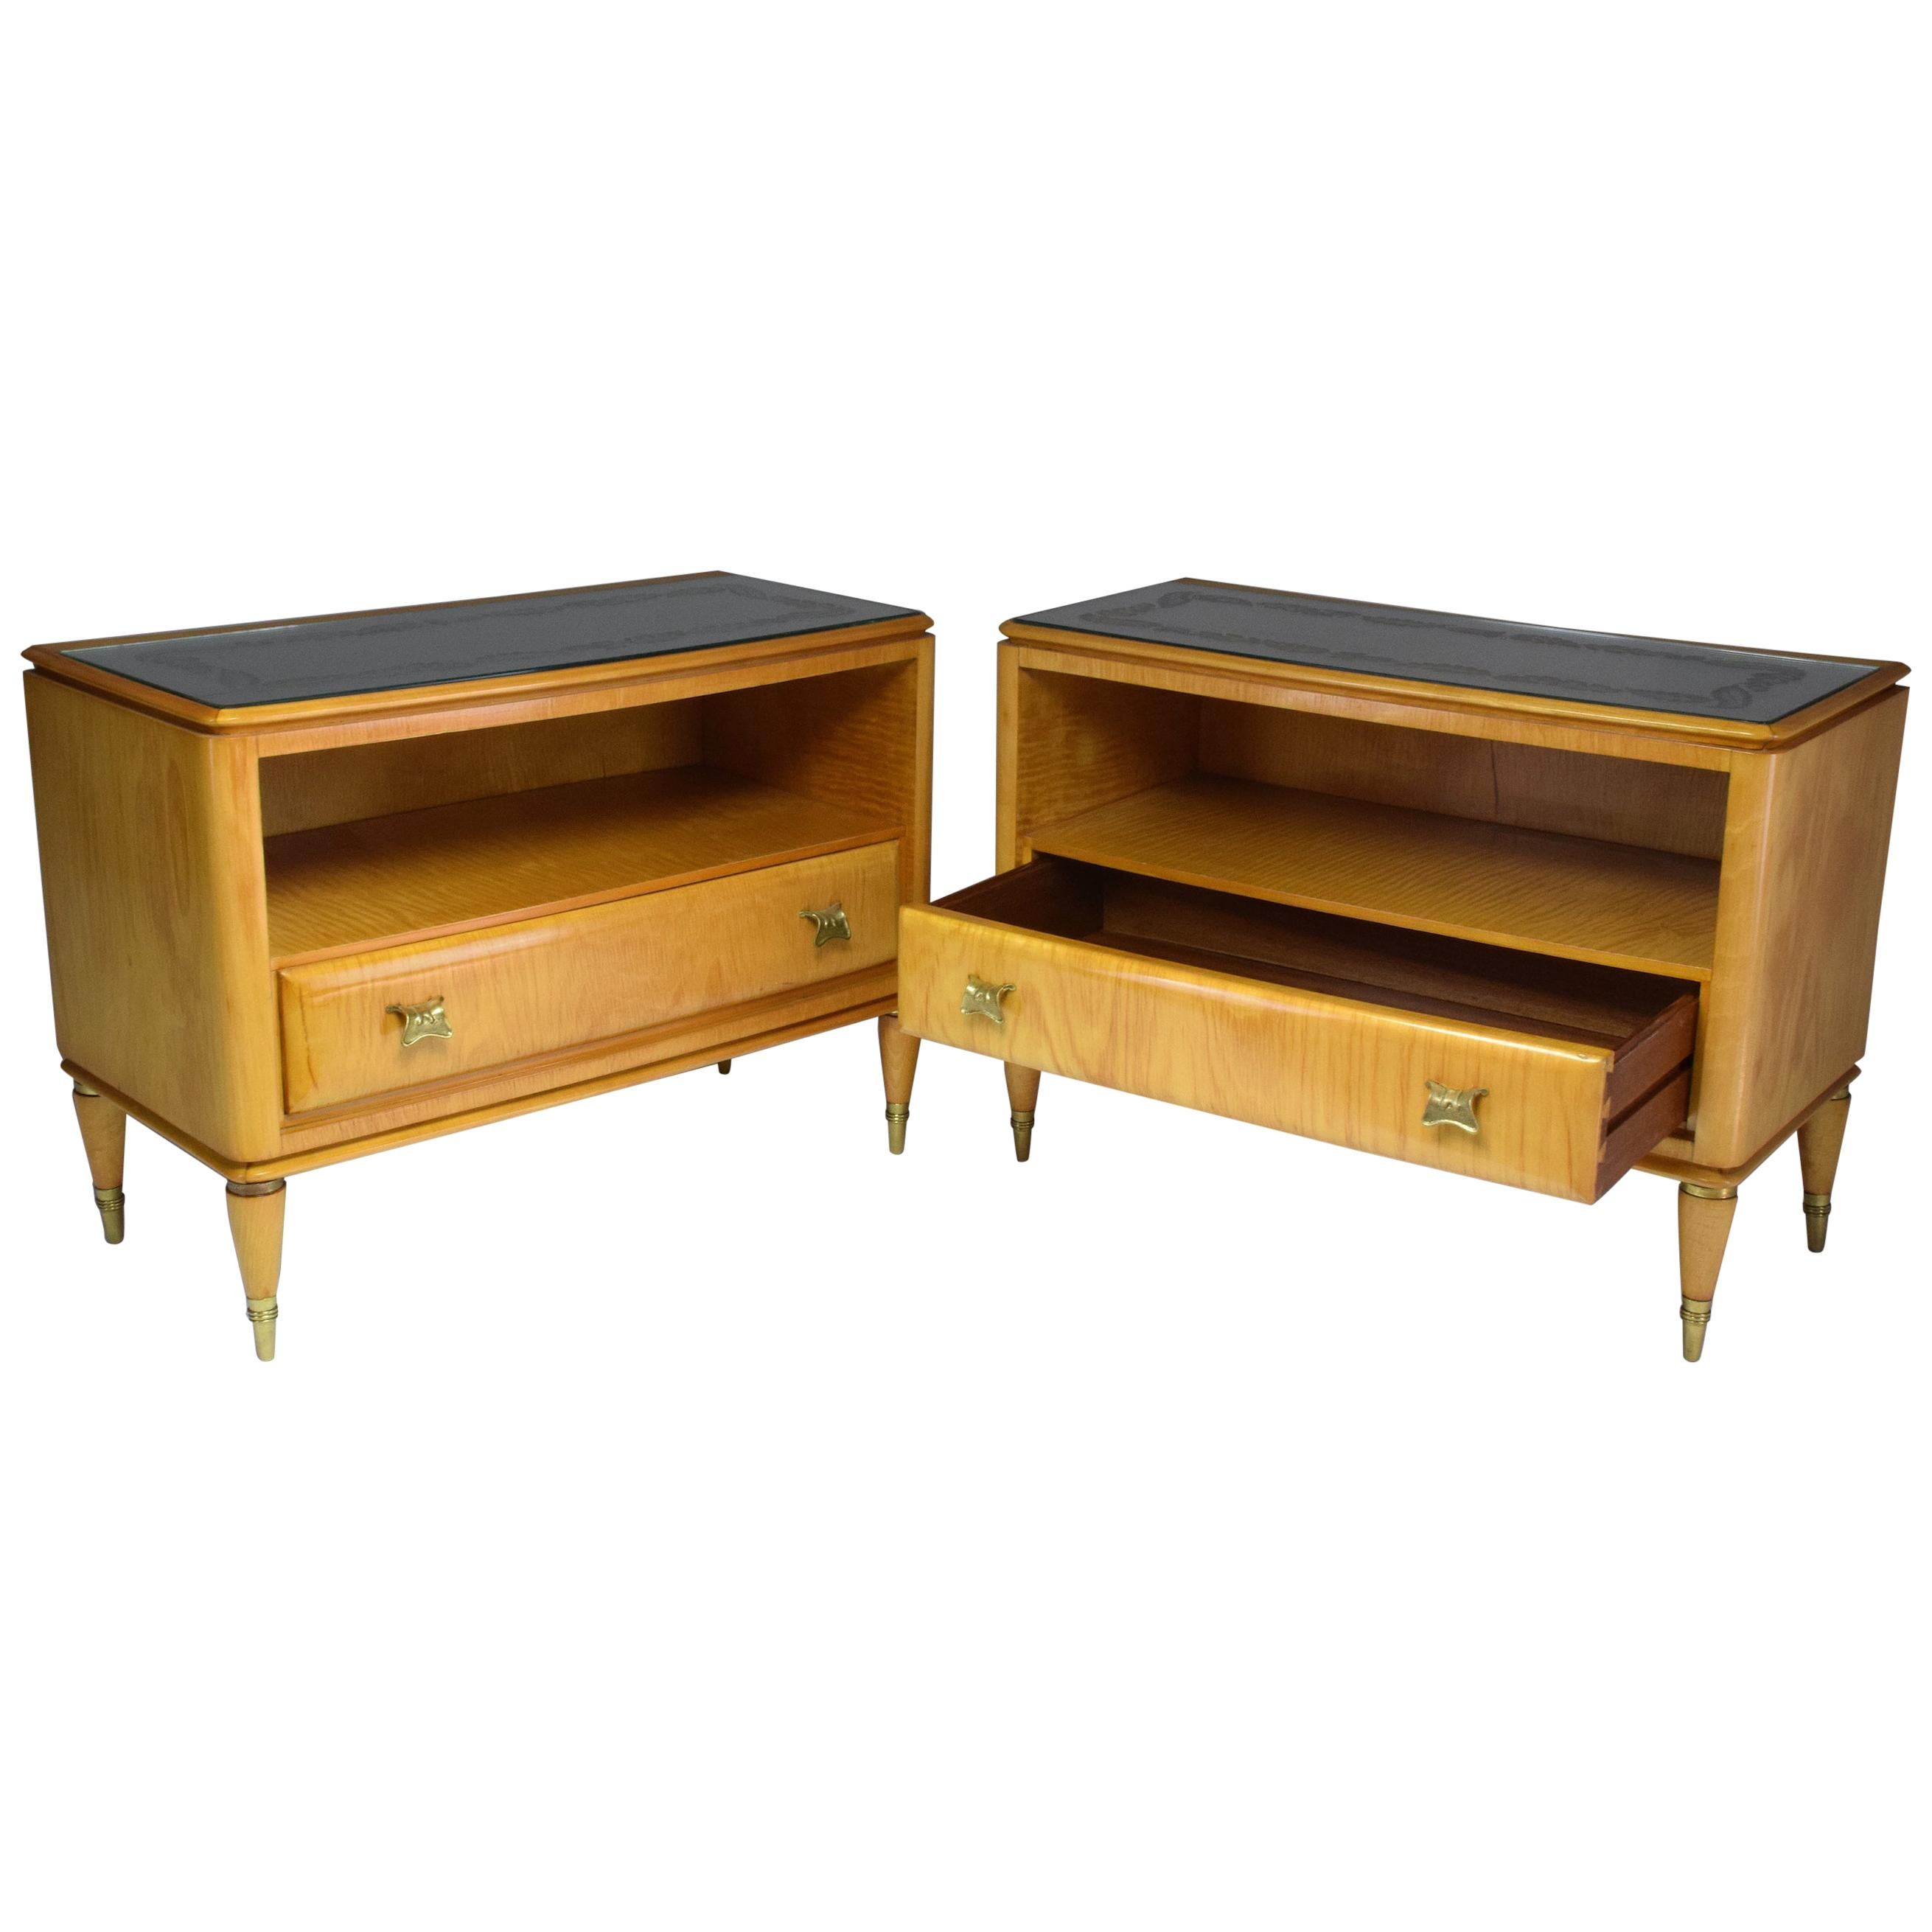 Pair of Italian Midcentury Maple Wood Nightstands, 1940s